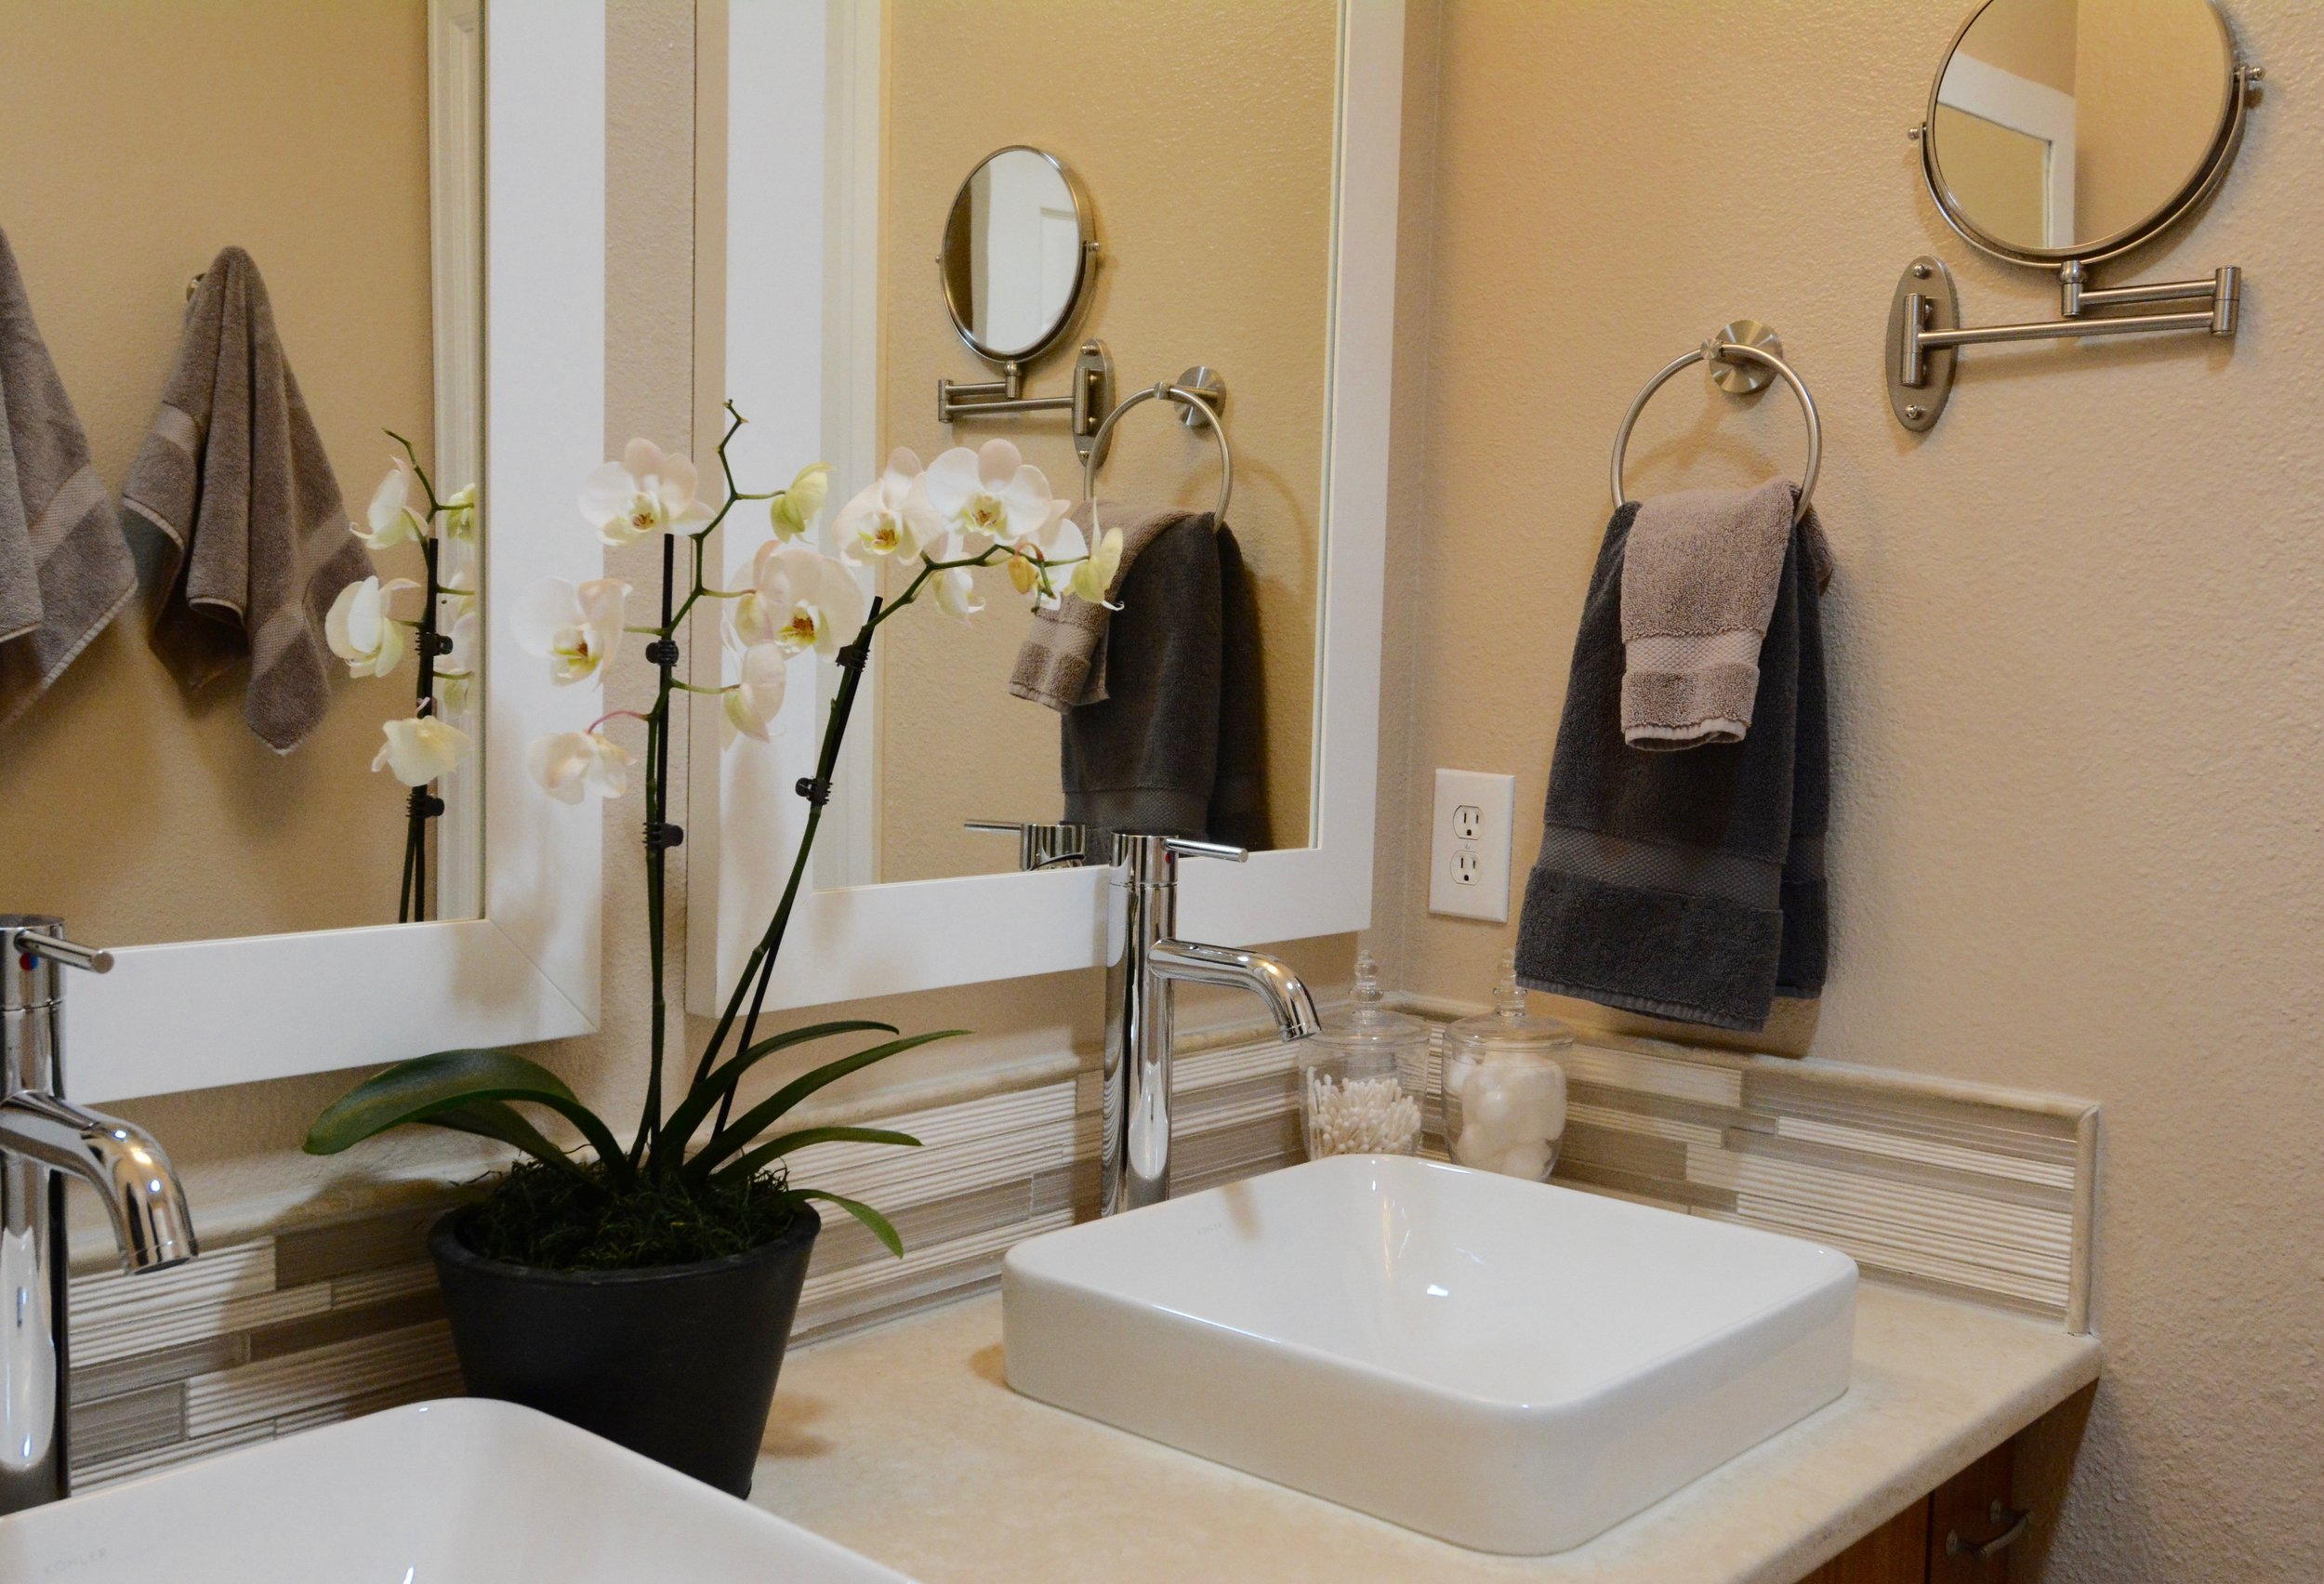 This guest bath remodel was a total transformation. The new bamboo cabinetry, travertine countertops, stone and glass backsplash, modern sinks, and sleek faucets made this once childish space into a sophisticated and calming space.